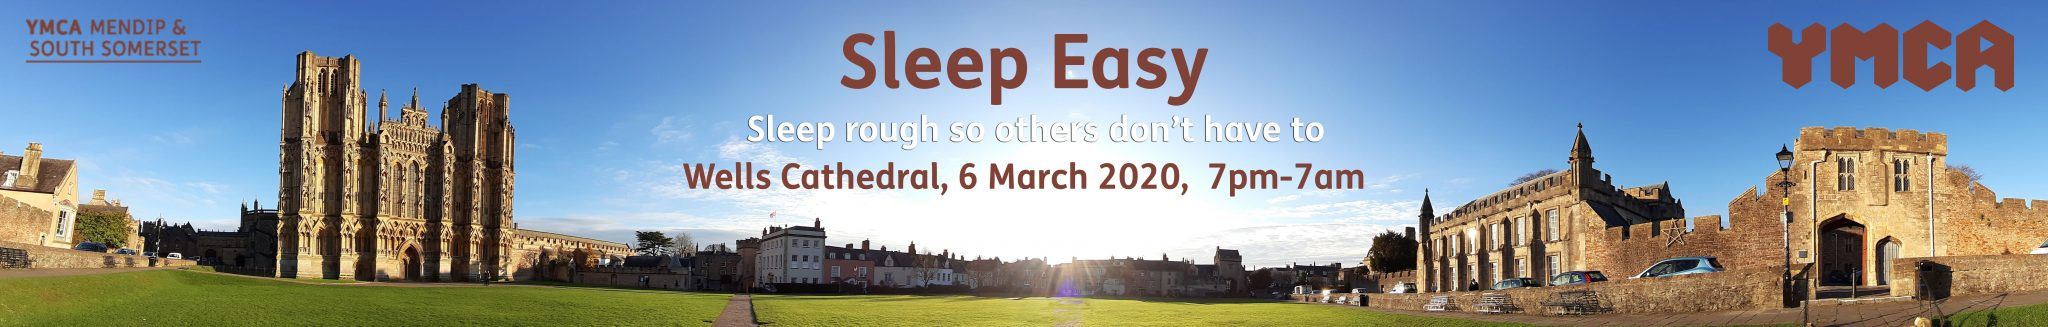 Sleep Easy 2020 Individual challenge